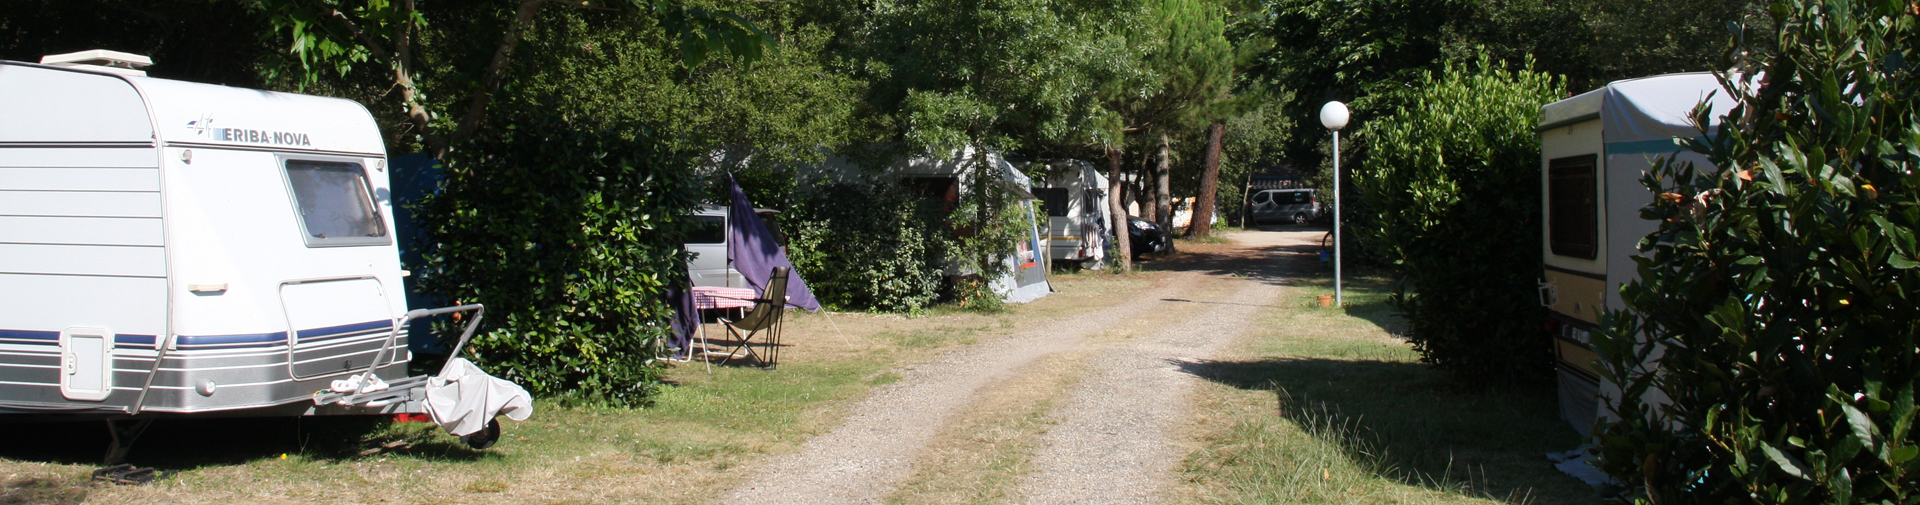 slide-emplacement-camping-ile-oleron